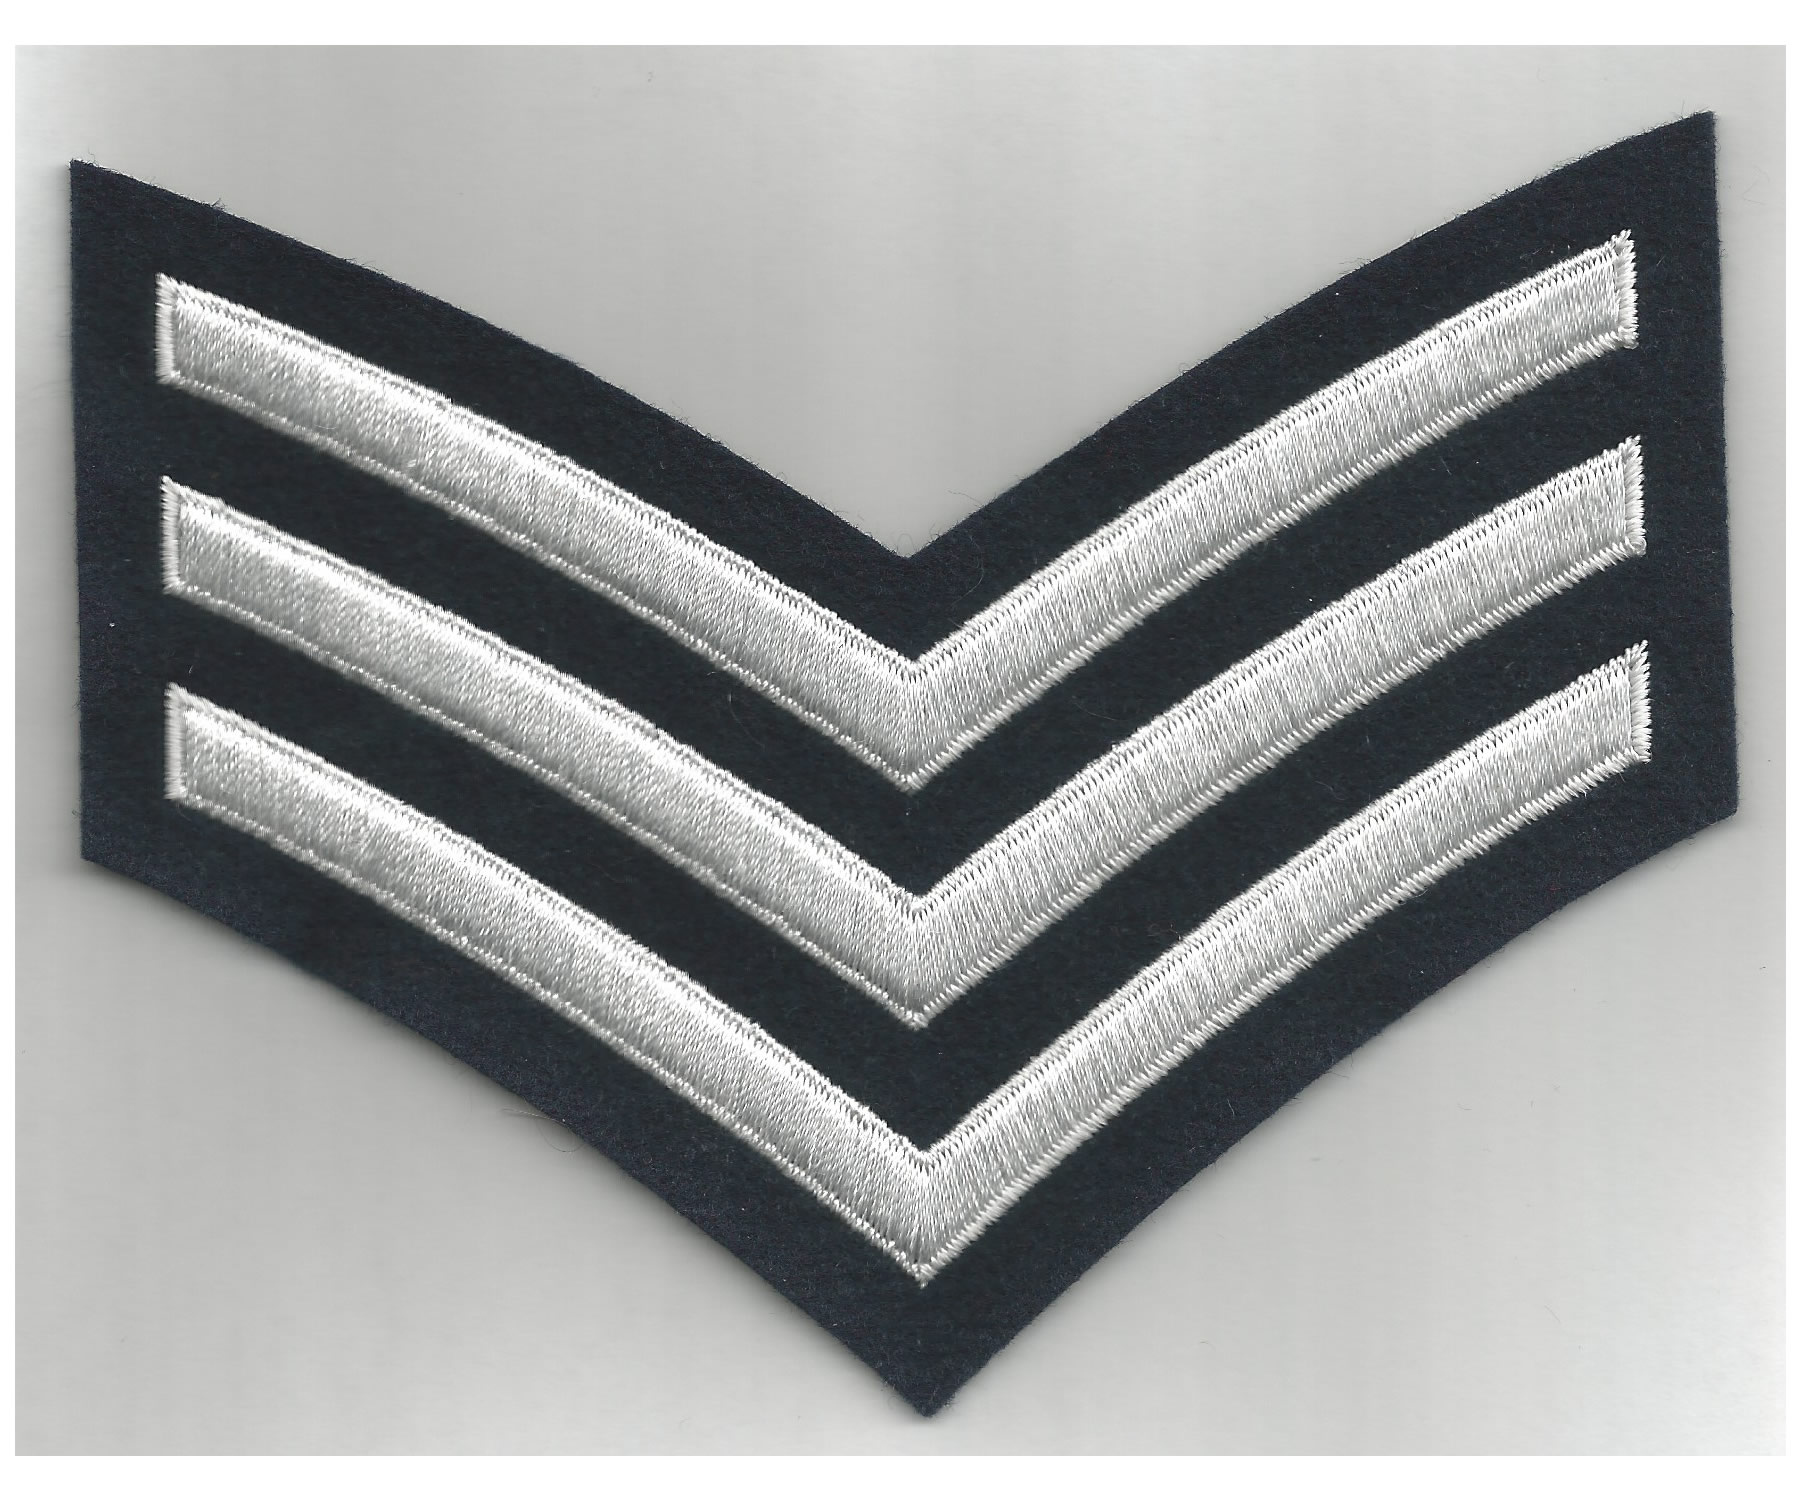 British Royal Air Force WWI/WWII style Sergeant Stripes